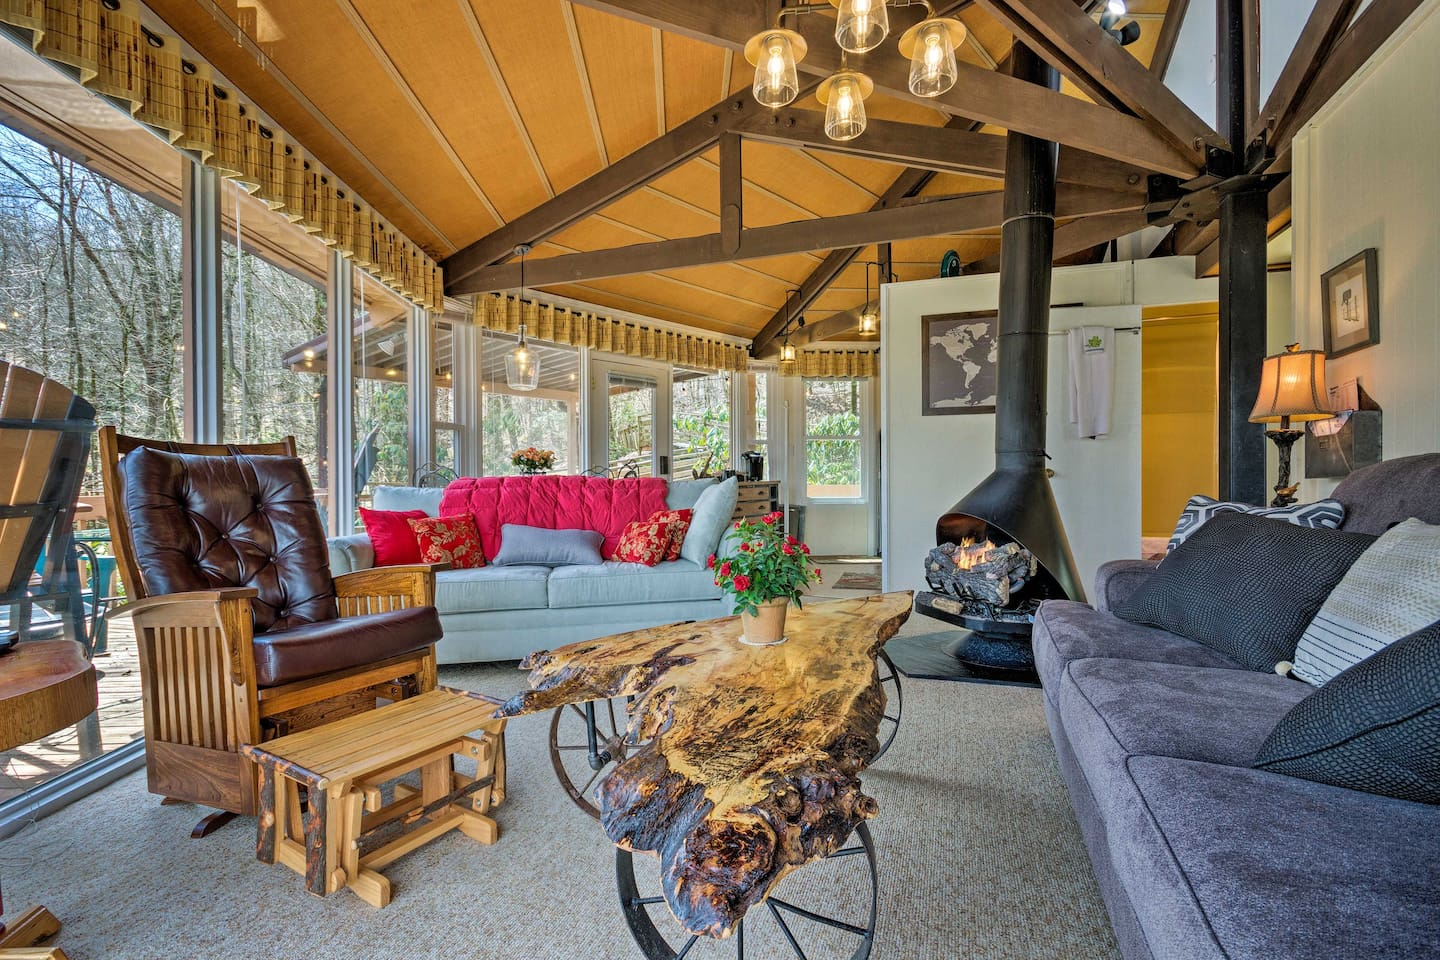 Living room view with vaulted ceilings, rustic decor, and natural wood furniture.